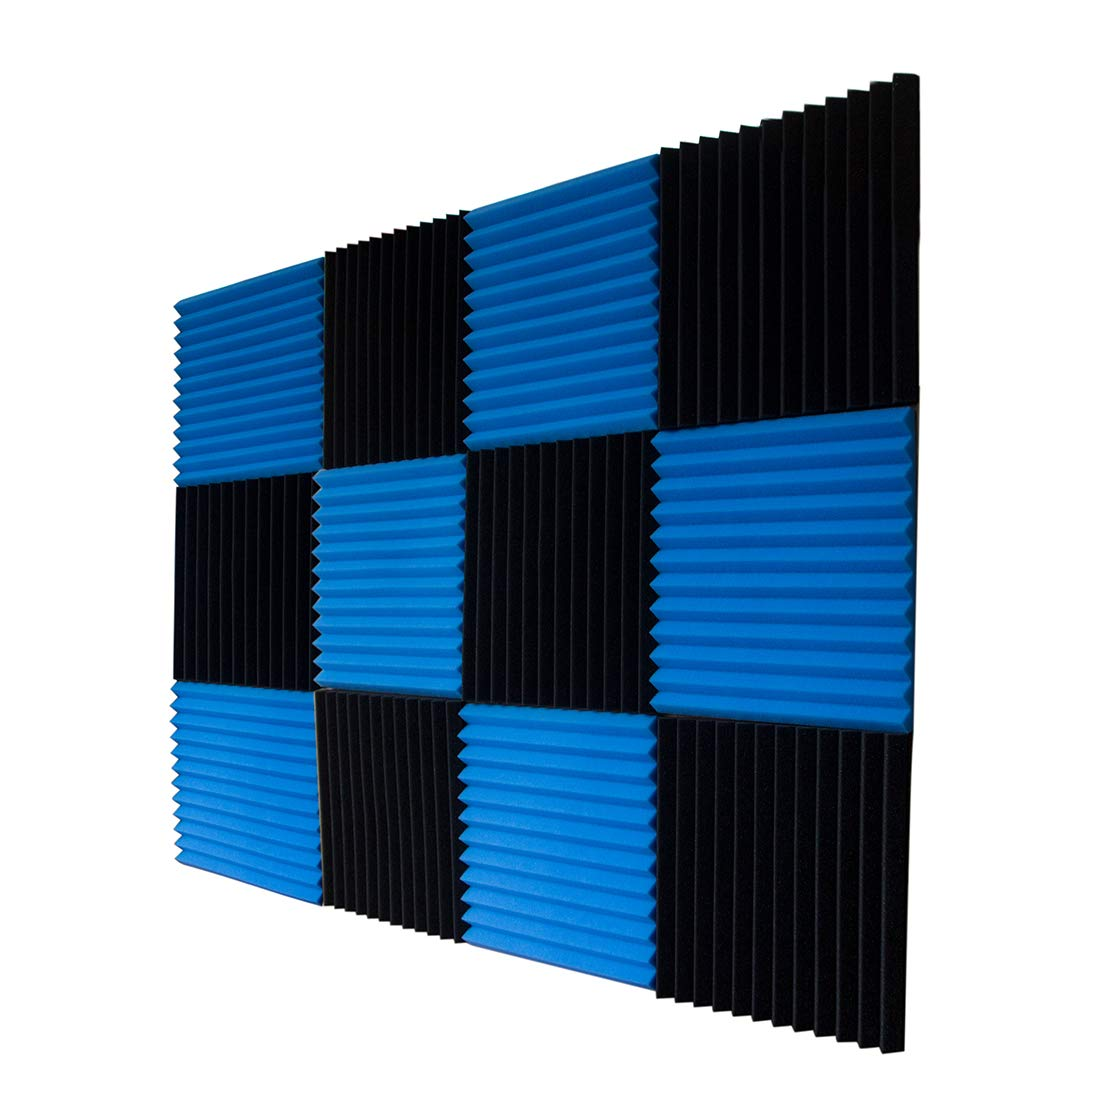 KAISHENGWEI 24 Pack Acoustic Panels Studio Foam Wedges 1 X 12 X 12Sound-proofing,Sound Absorption